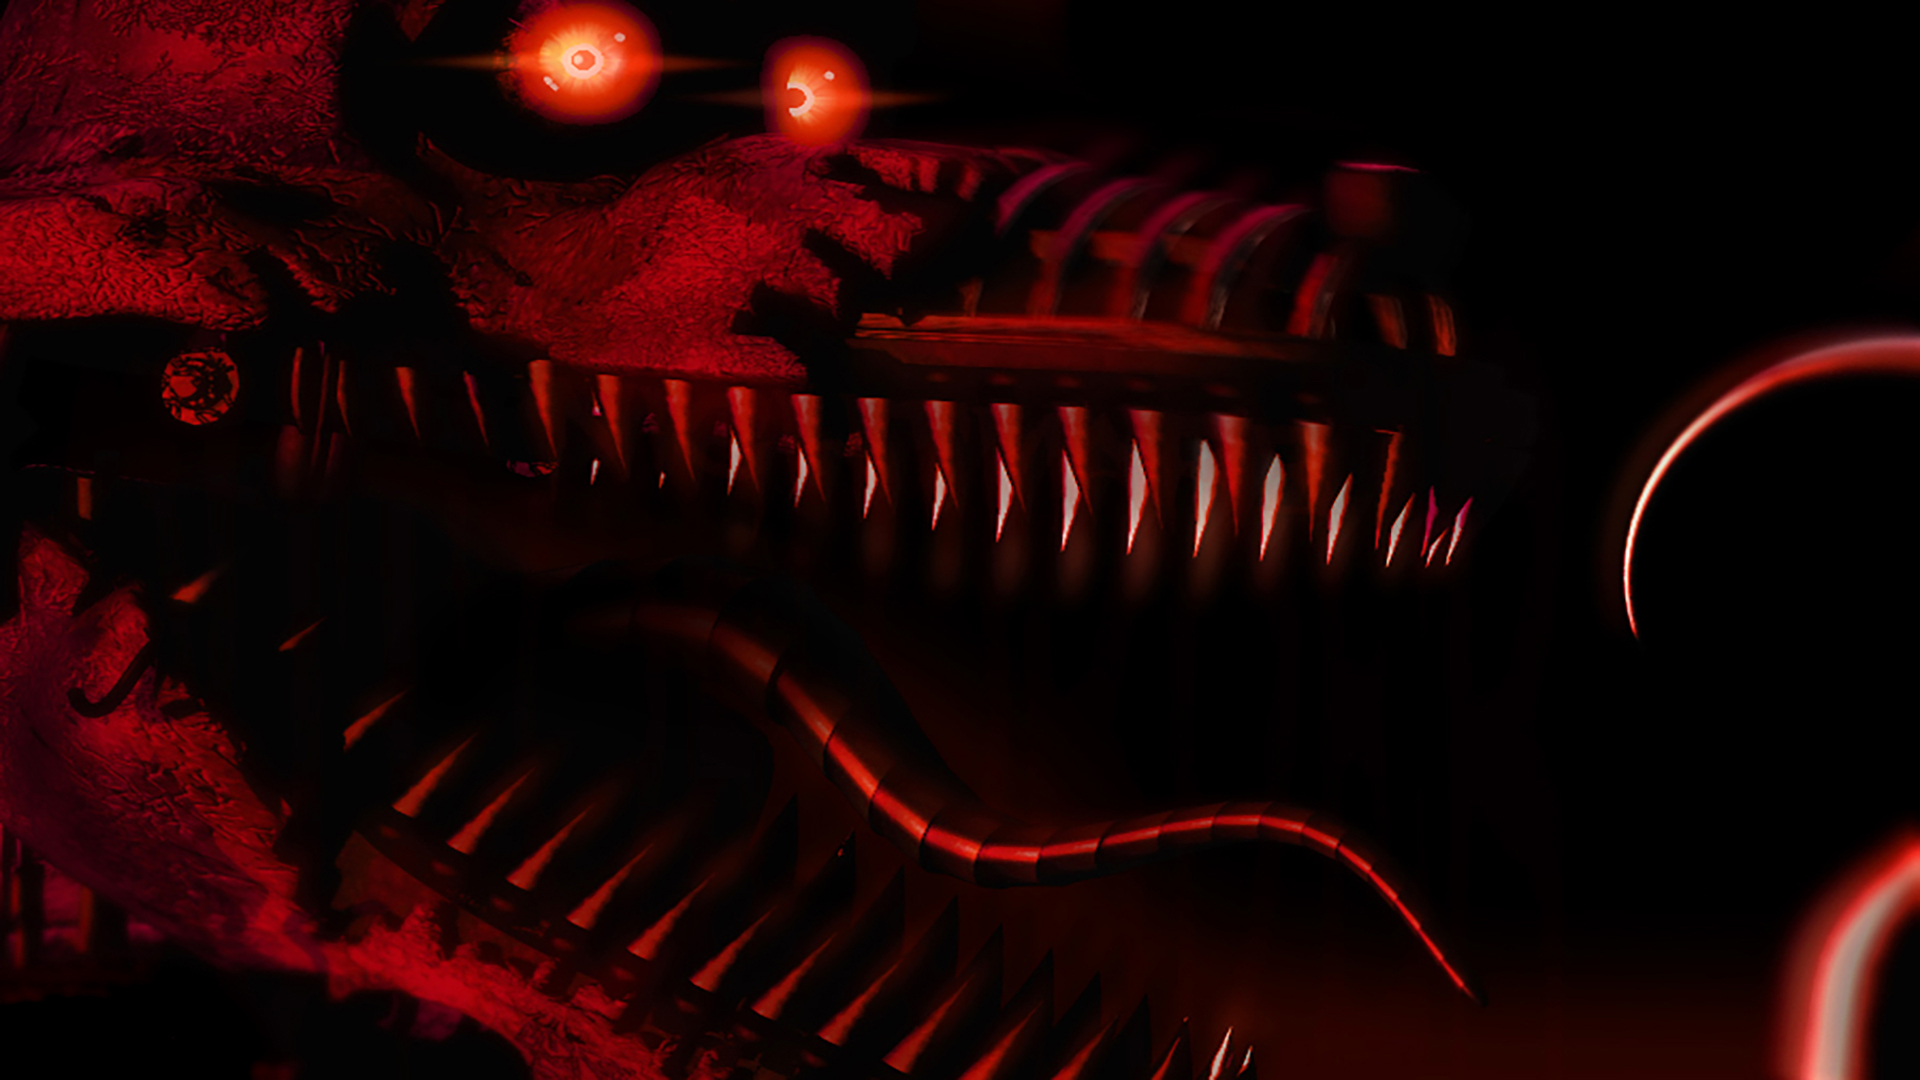 Nightmare Foxy Wallpaper [C4D] by YinyangGio1987 on DeviantArt